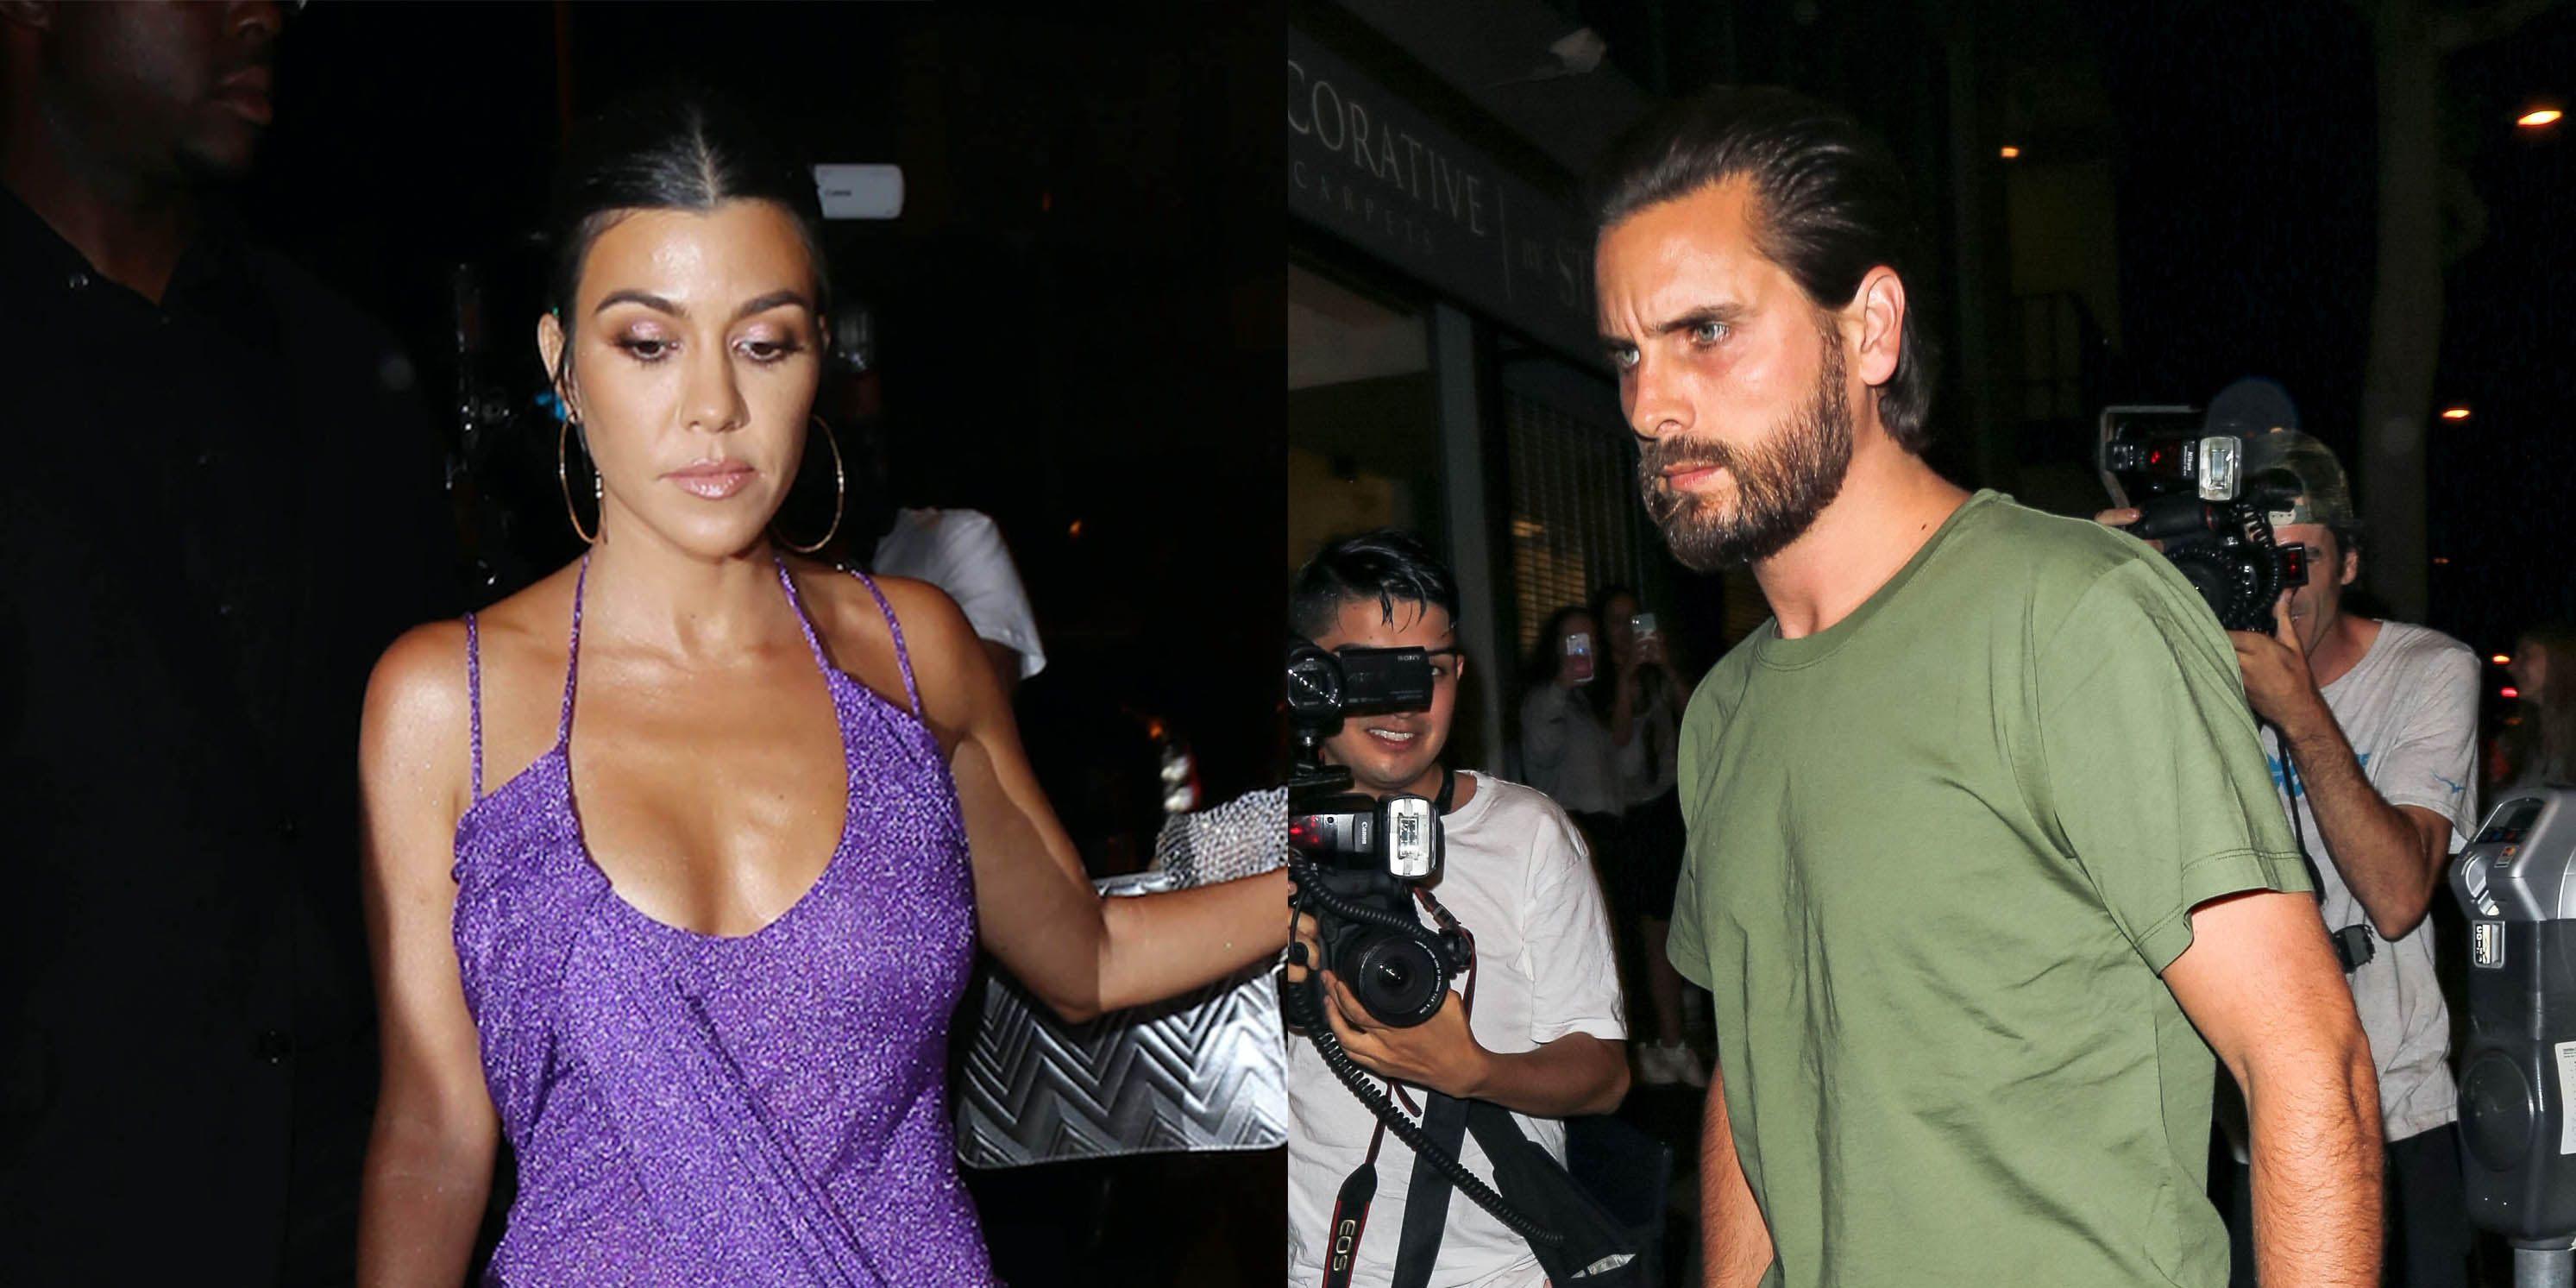 Kourtney Kardashian Parties With Ex Boyfriend Scott Disick After